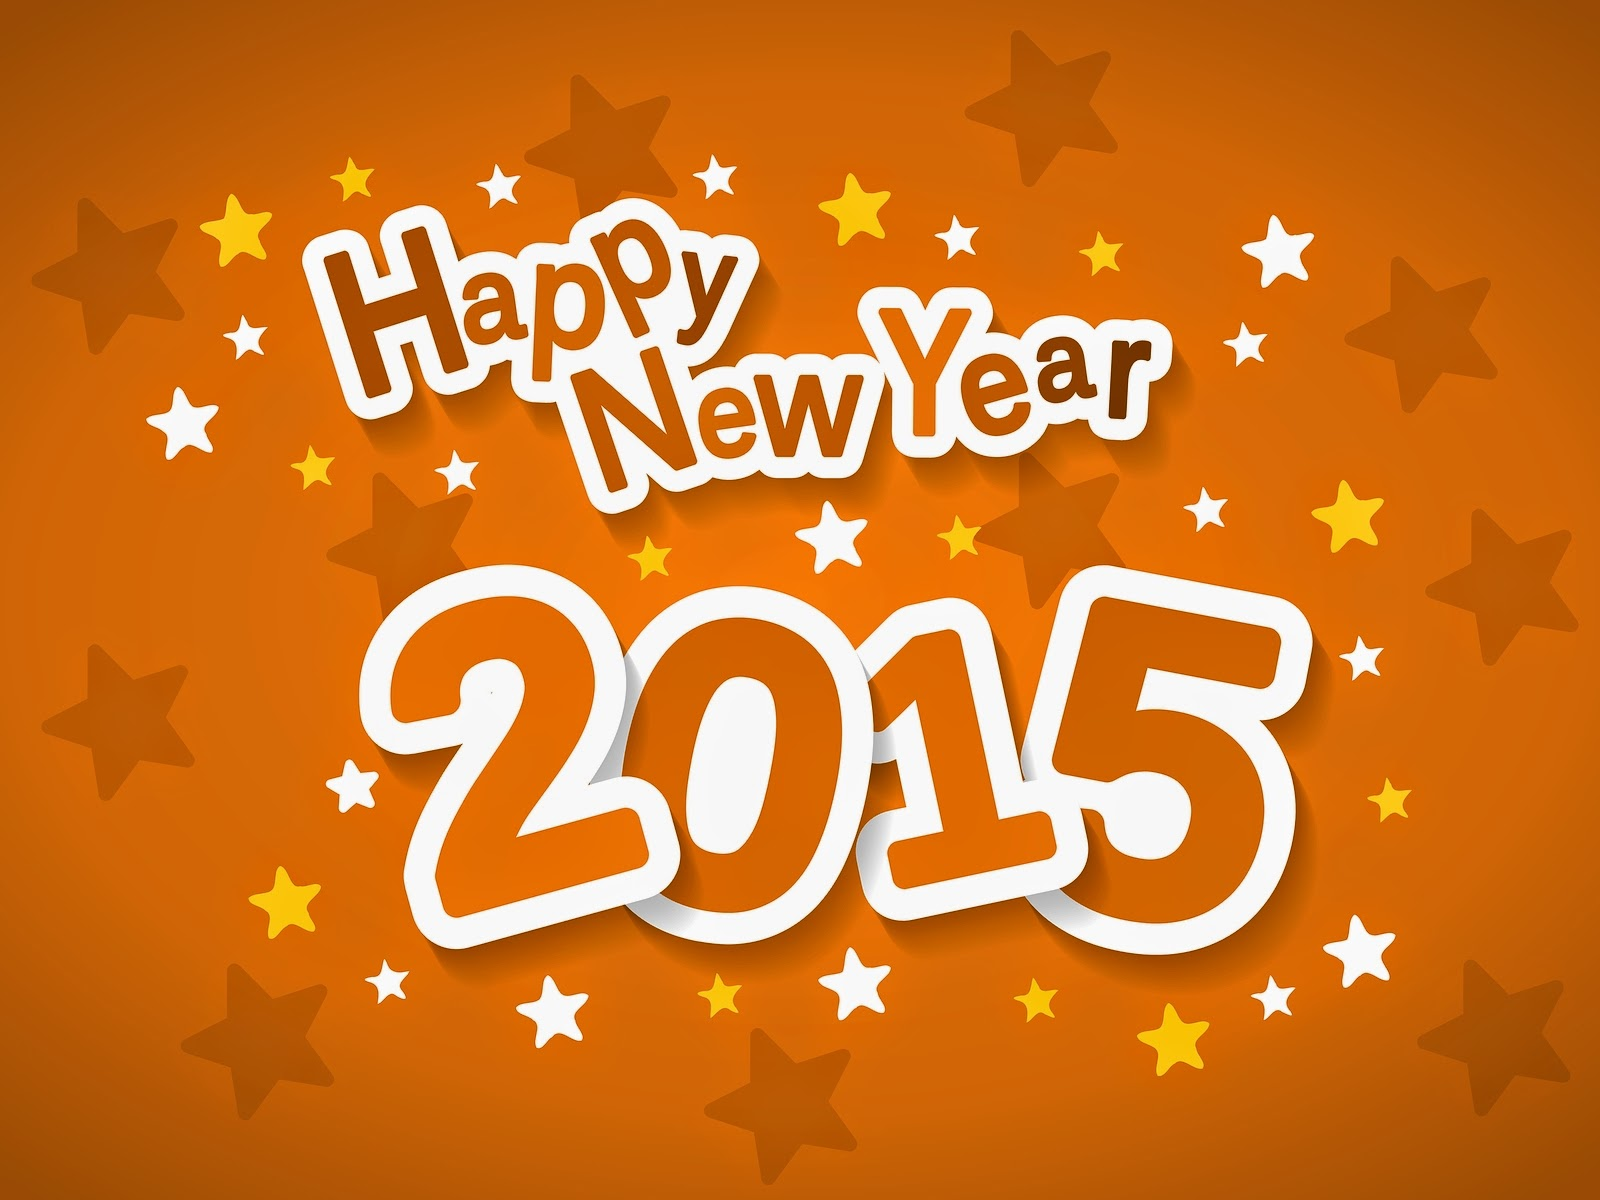 Happy New Year 2015 Images